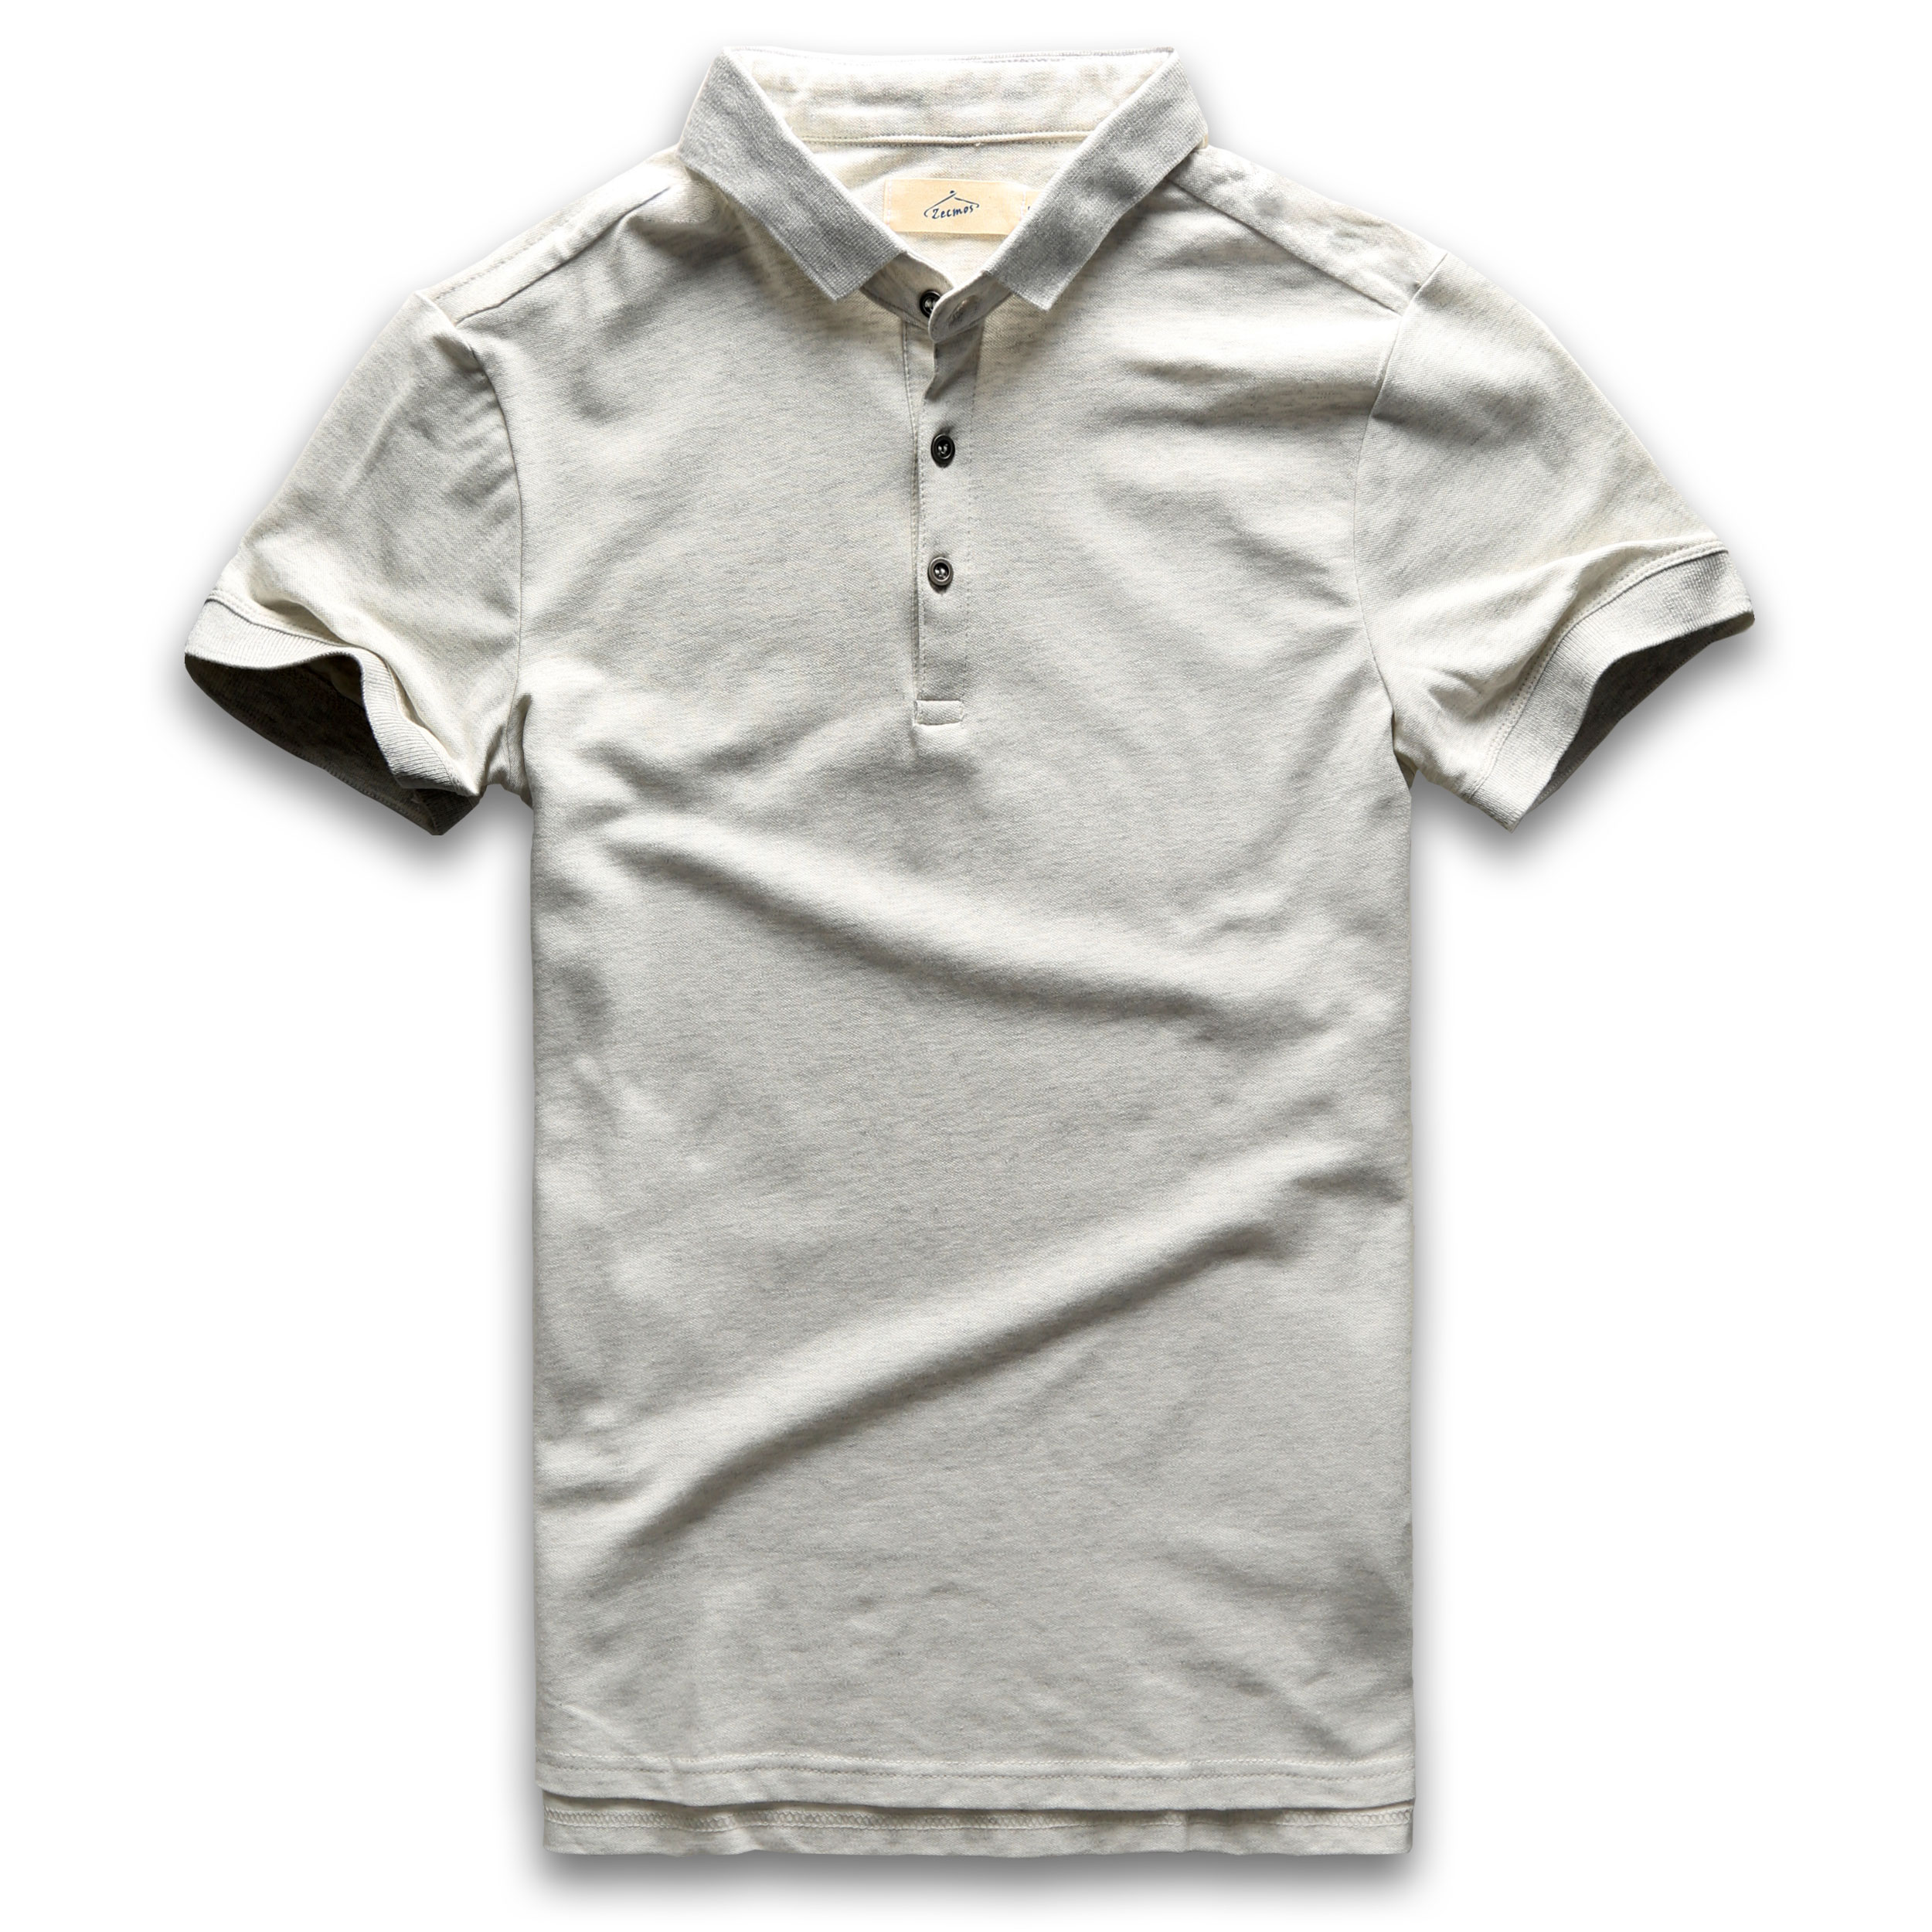 Classic   Polo   Shirt Men Short Sleeve   Polo   Shirts Summer Cotton Breathable Turn Down Collar Vintage Grey